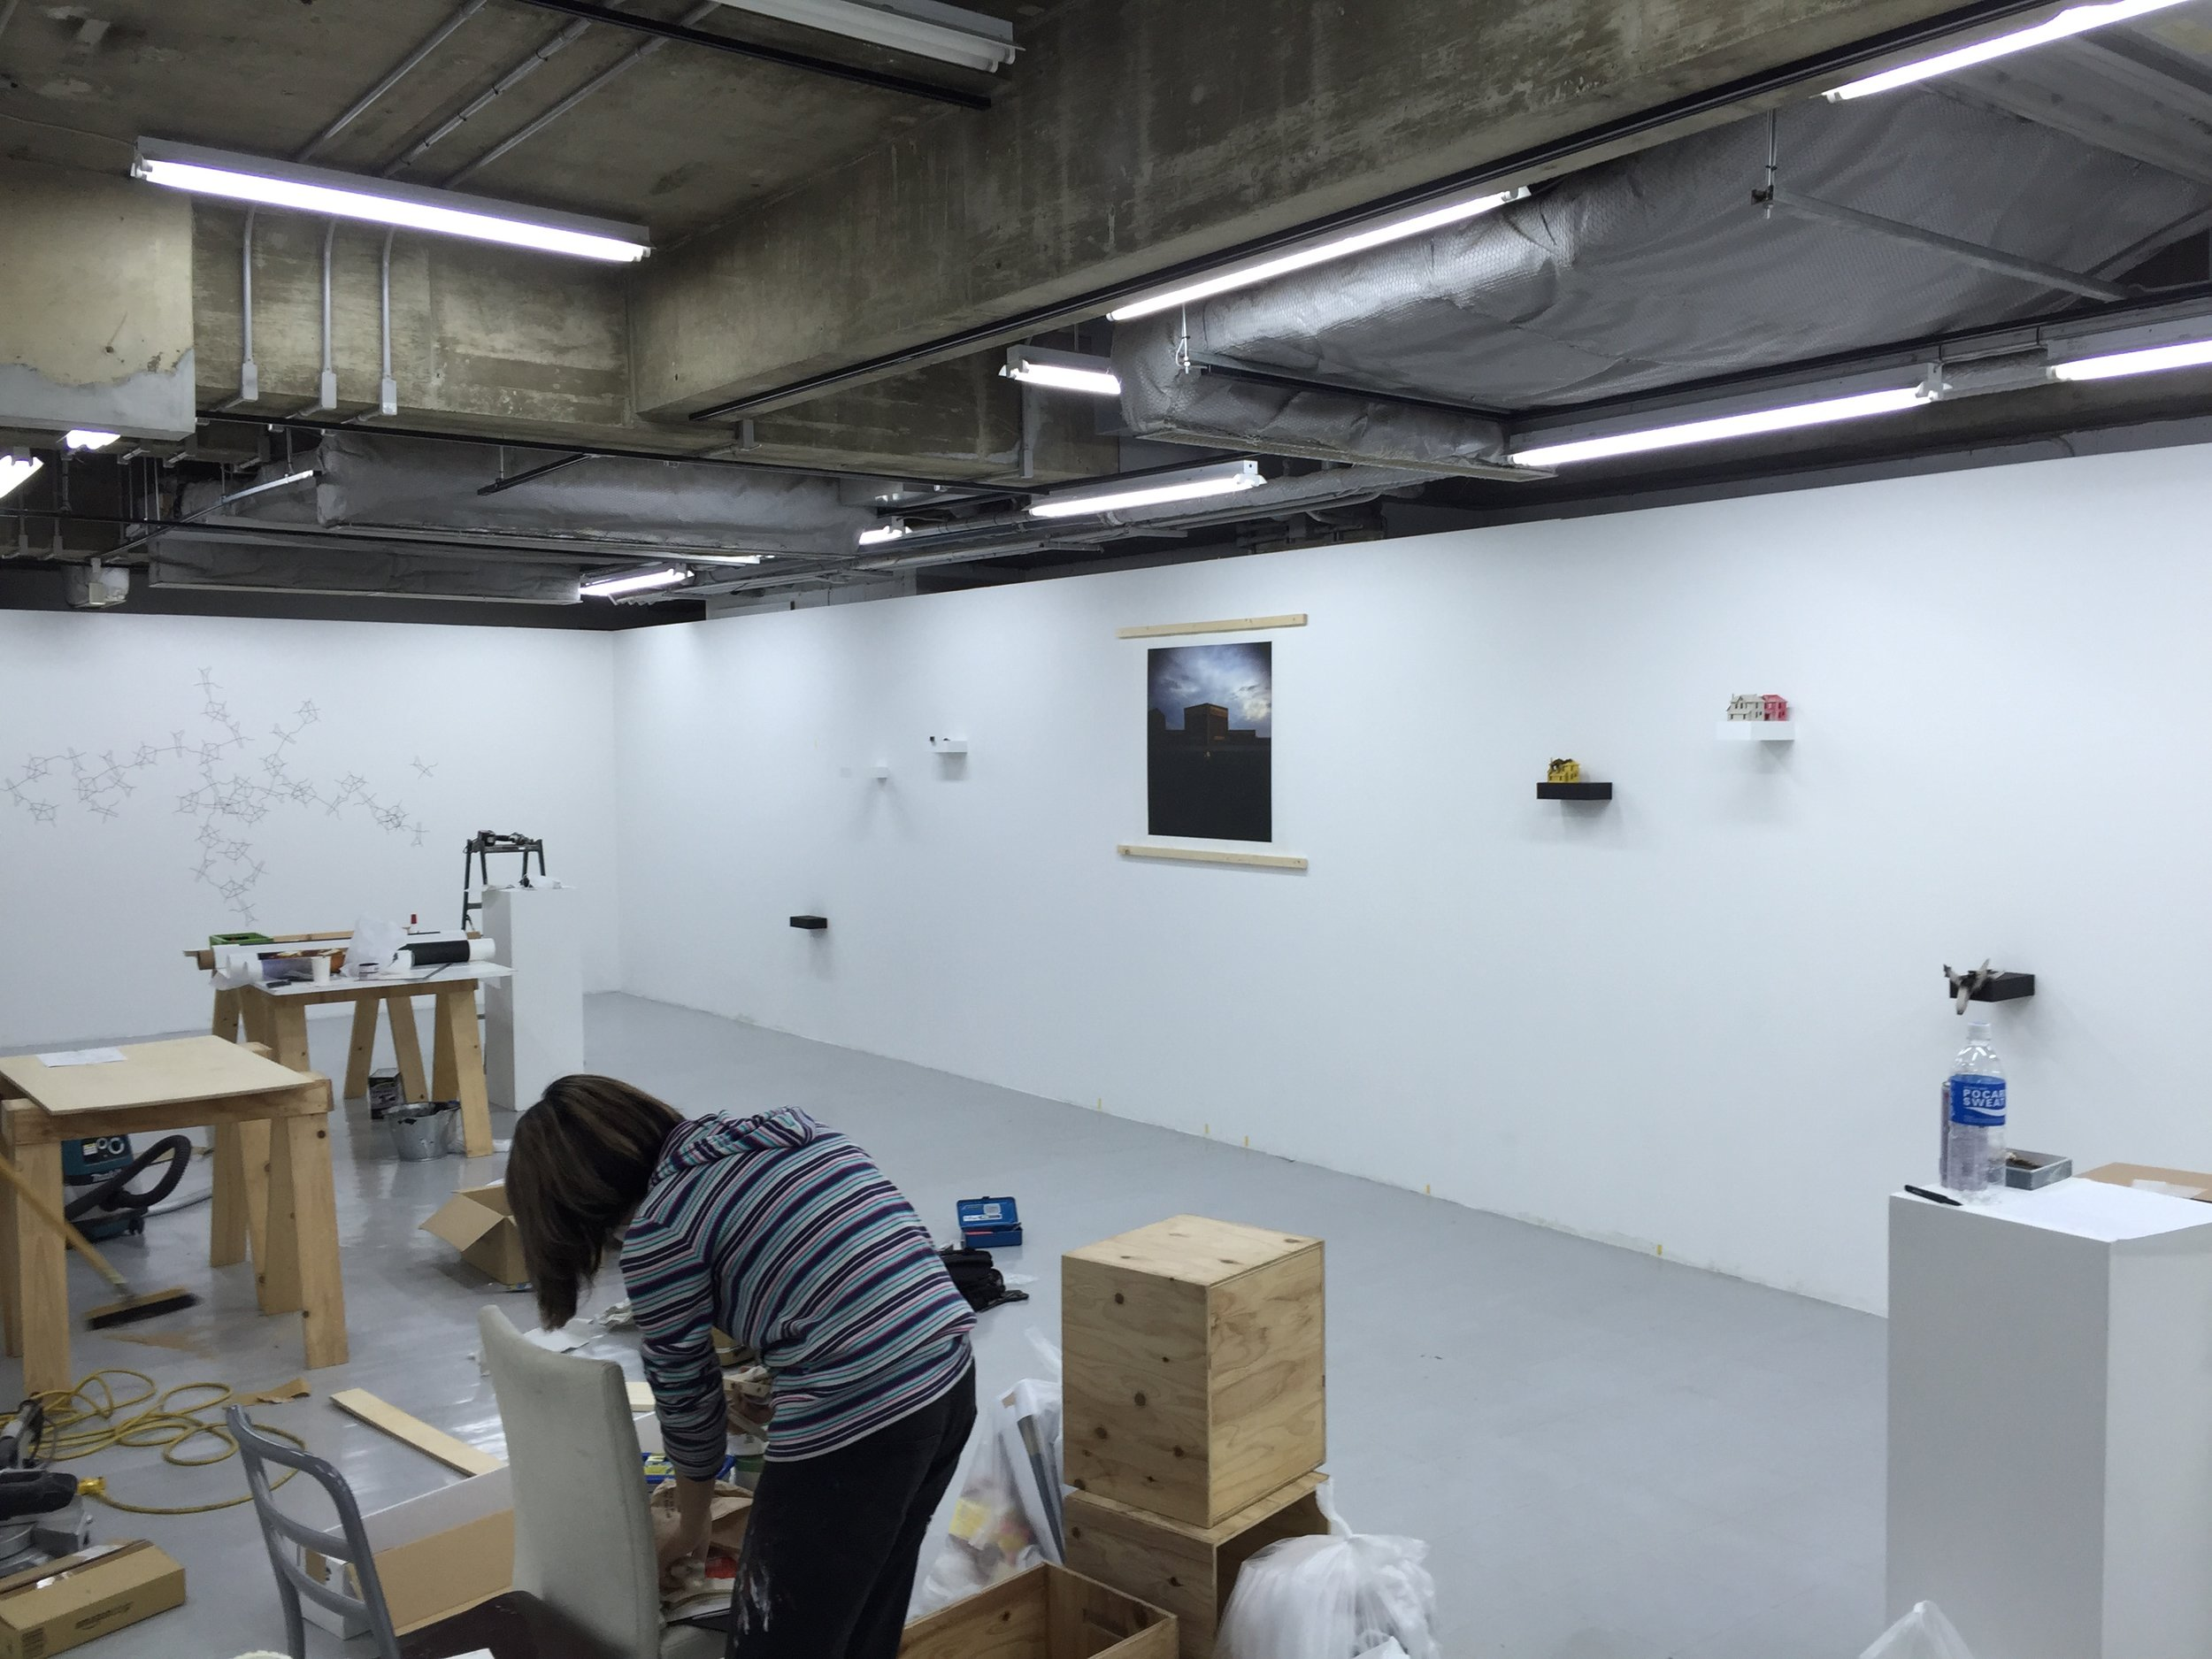 It took almost two days for the student volunteers and I to install the show.